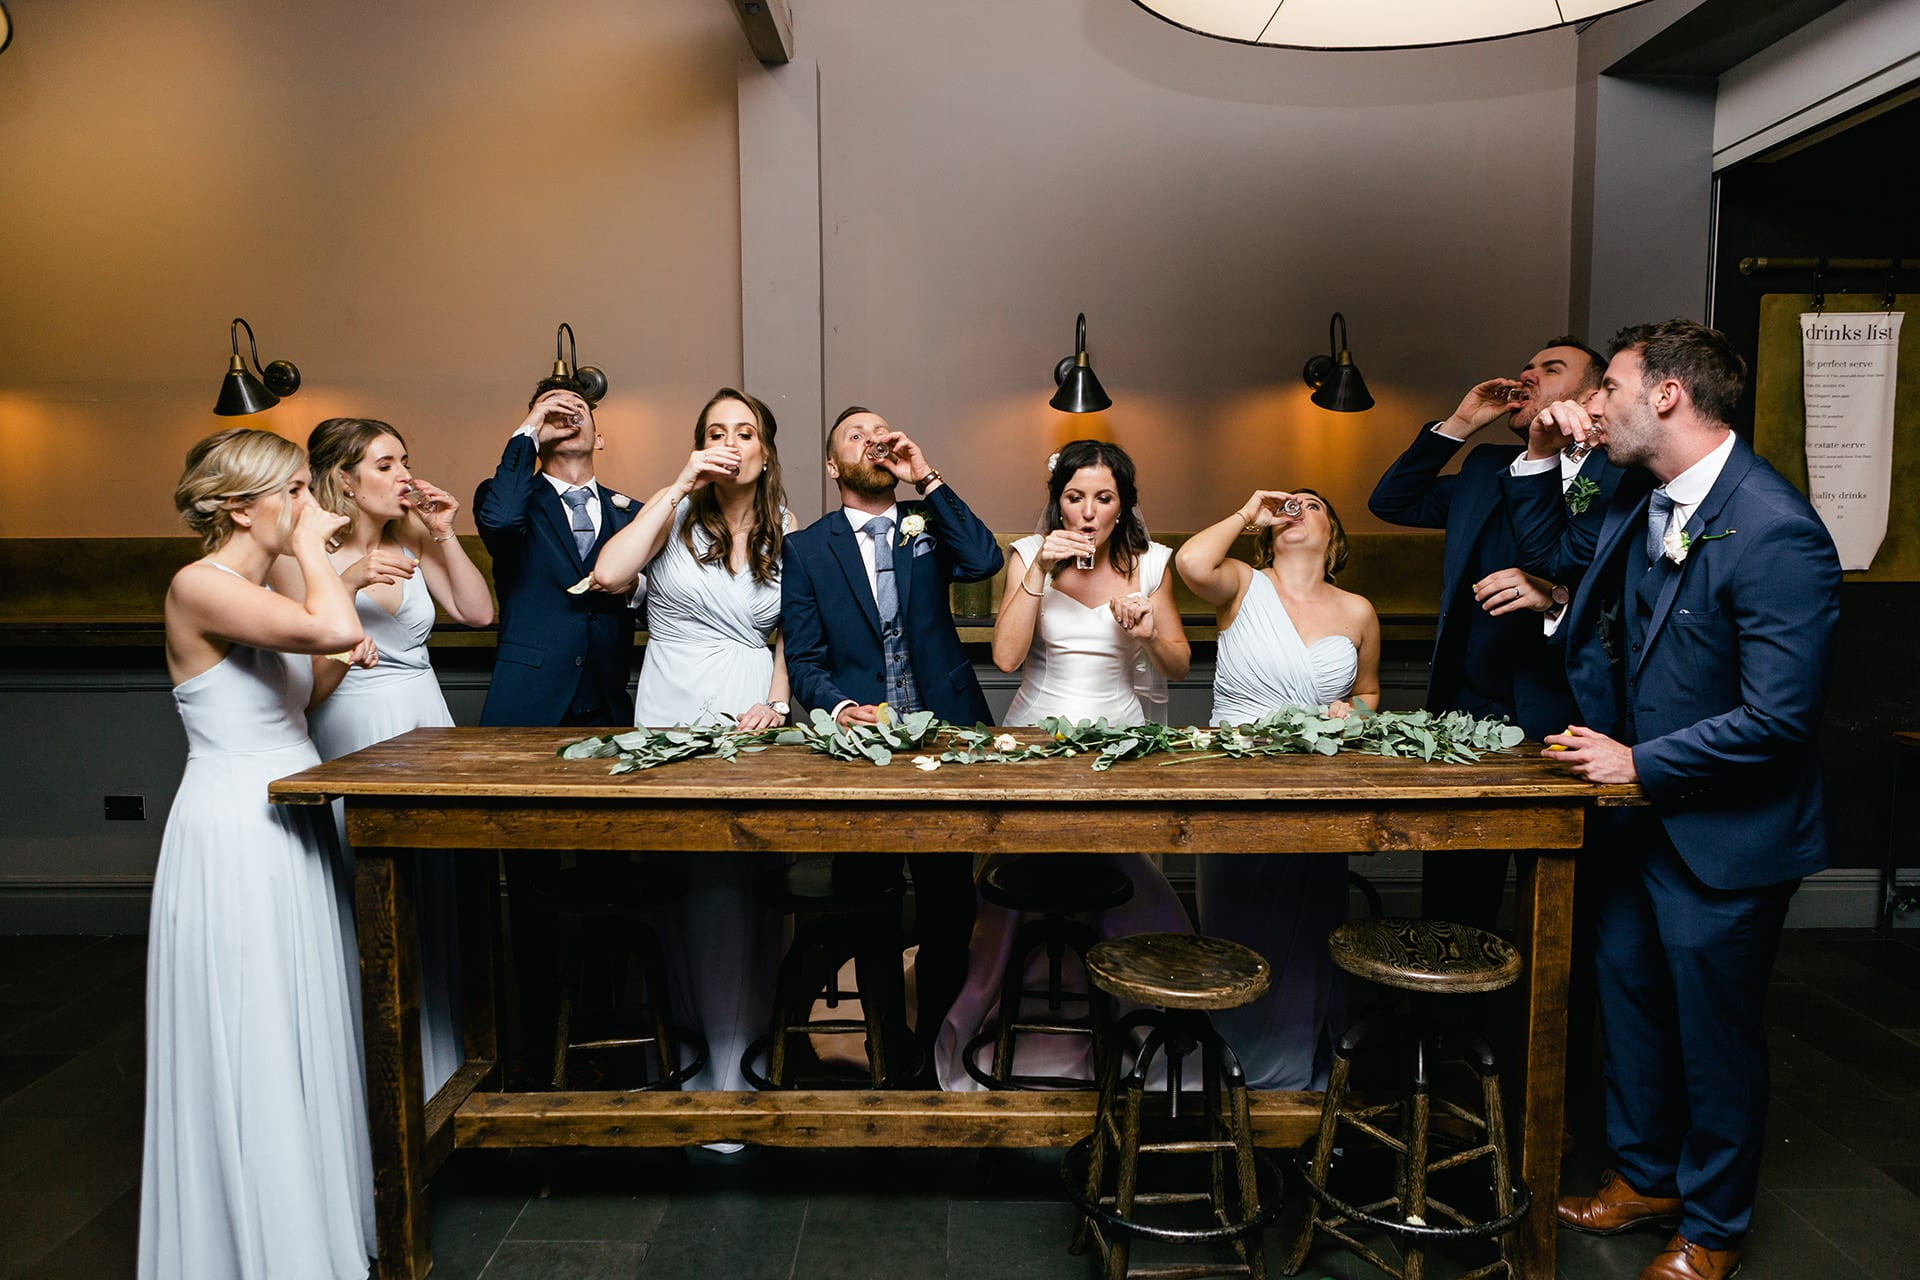 Hampton Manor wedding photography: Bridal party doing shots